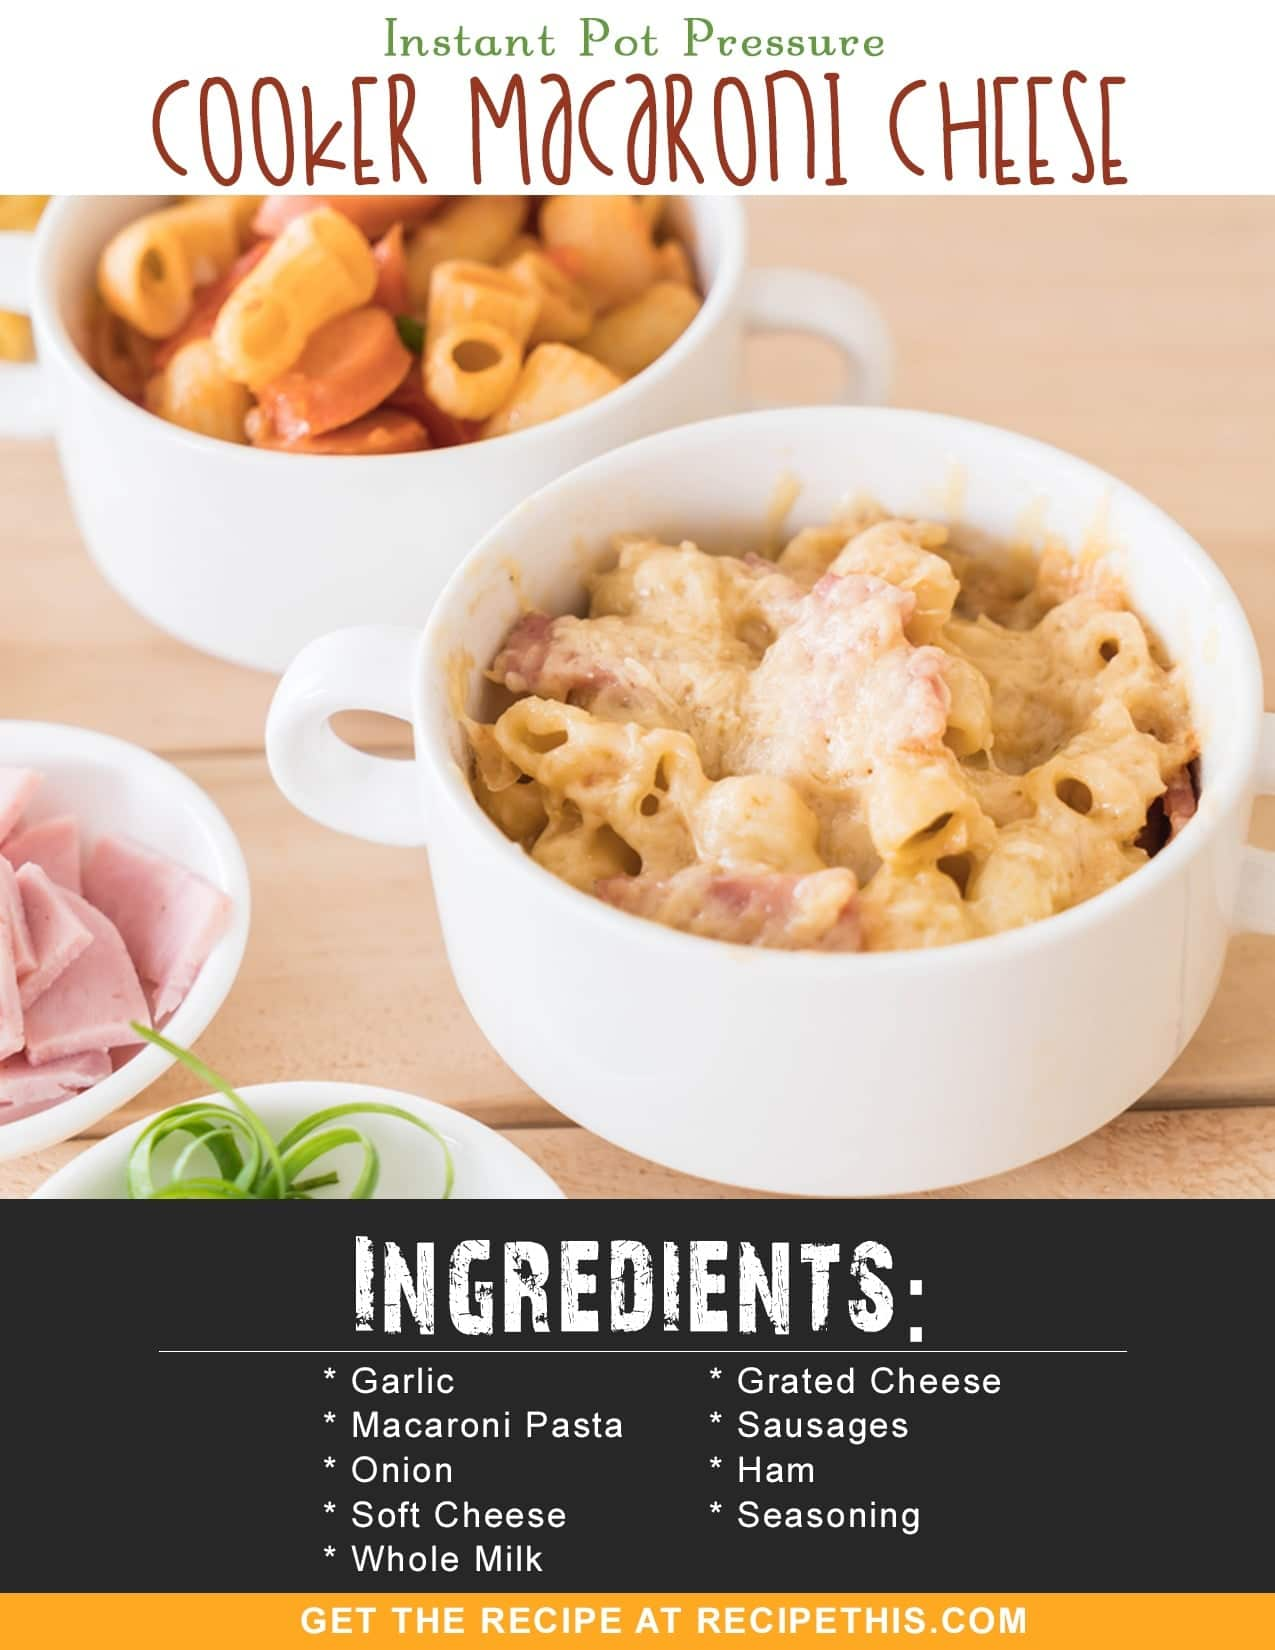 Instant Pot Recipes | Instant Pot Pressure Cooker Macaroni Cheese Recipe From RecipeThis.com